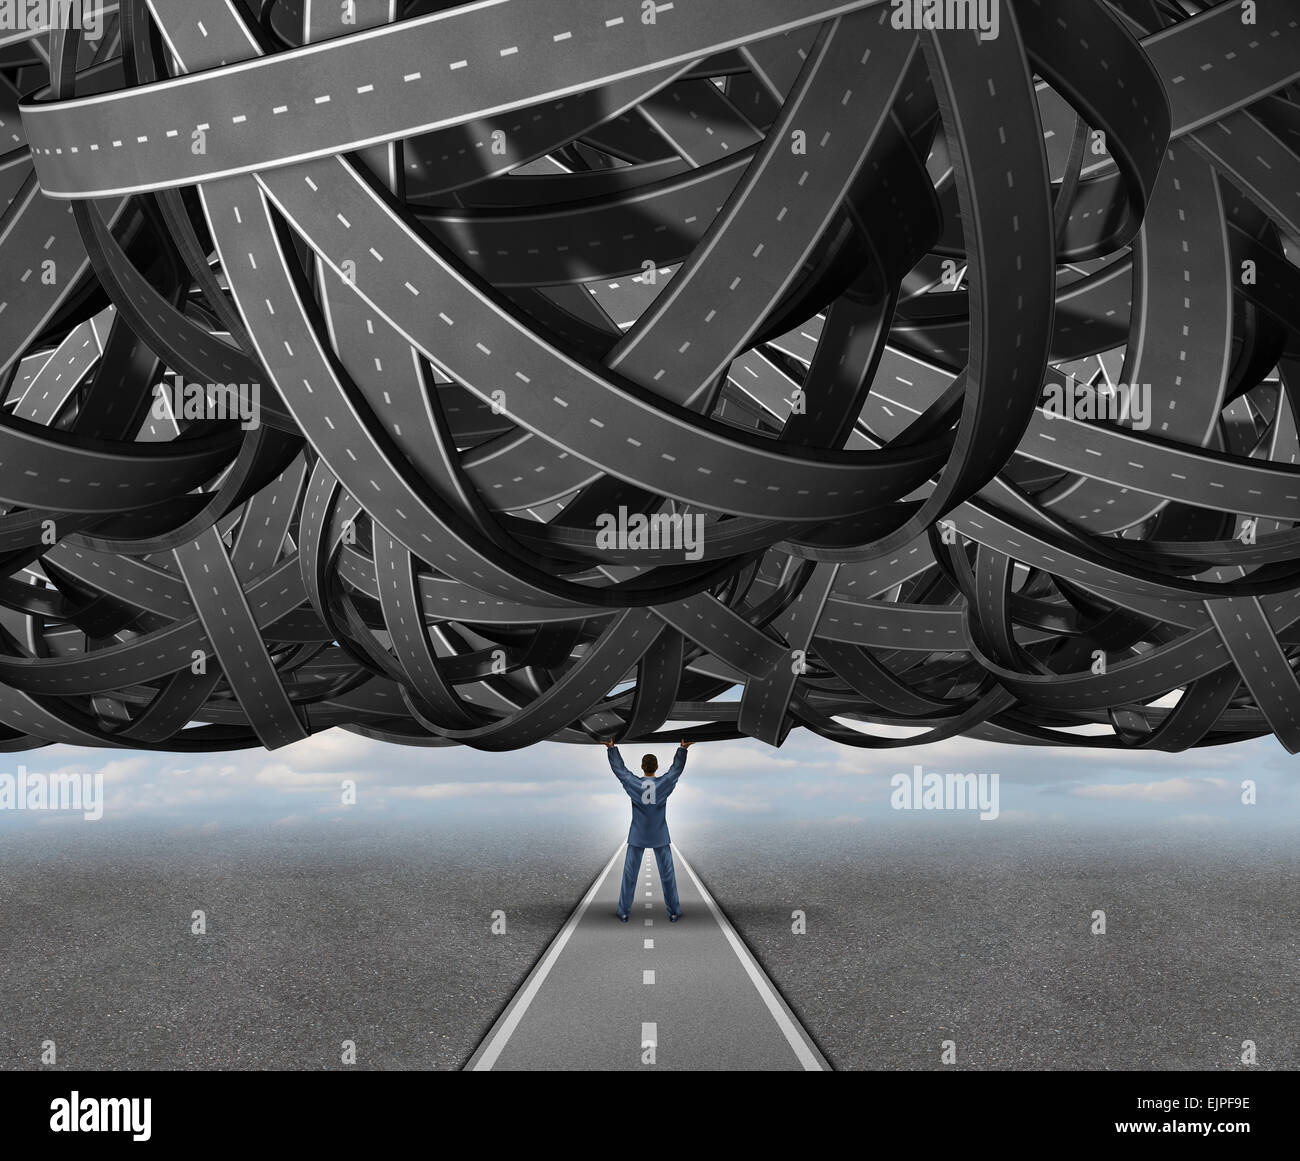 Solutions concept road metaphor as a businessperson lifting a massive group of tangled roads or highways to reveal - Stock Image